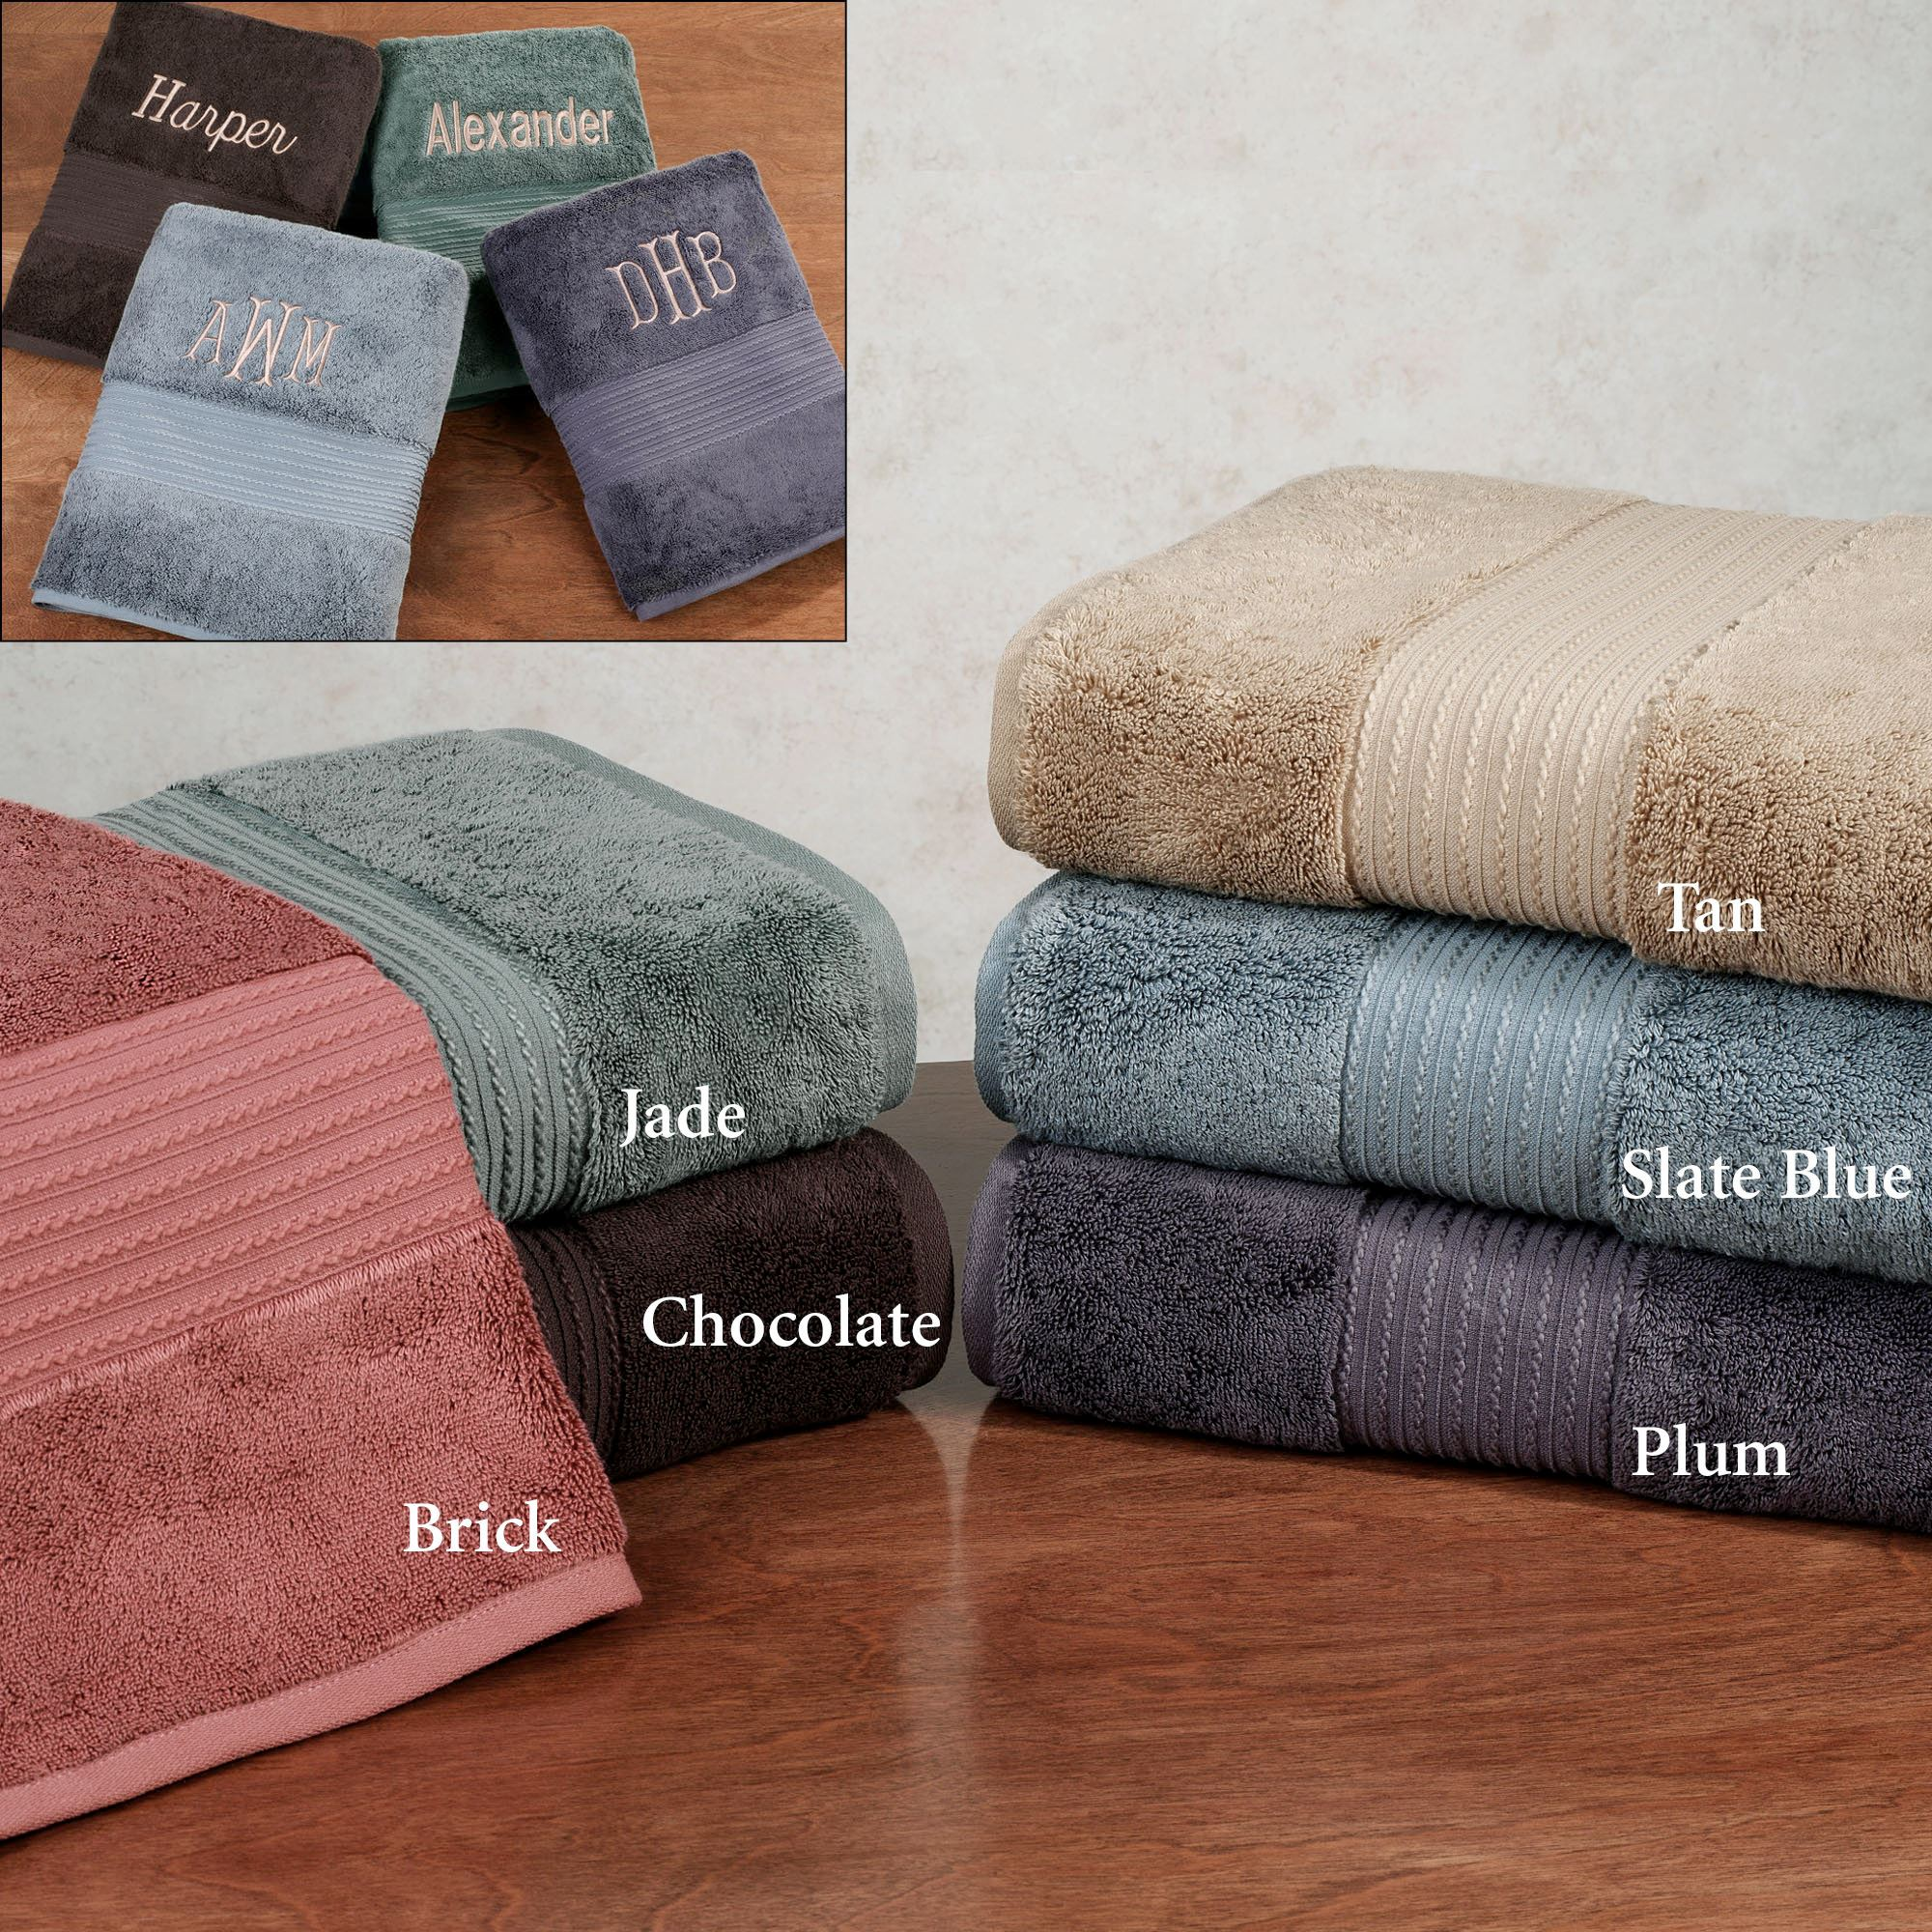 650 gsm kassasoft supima cotton bath towels